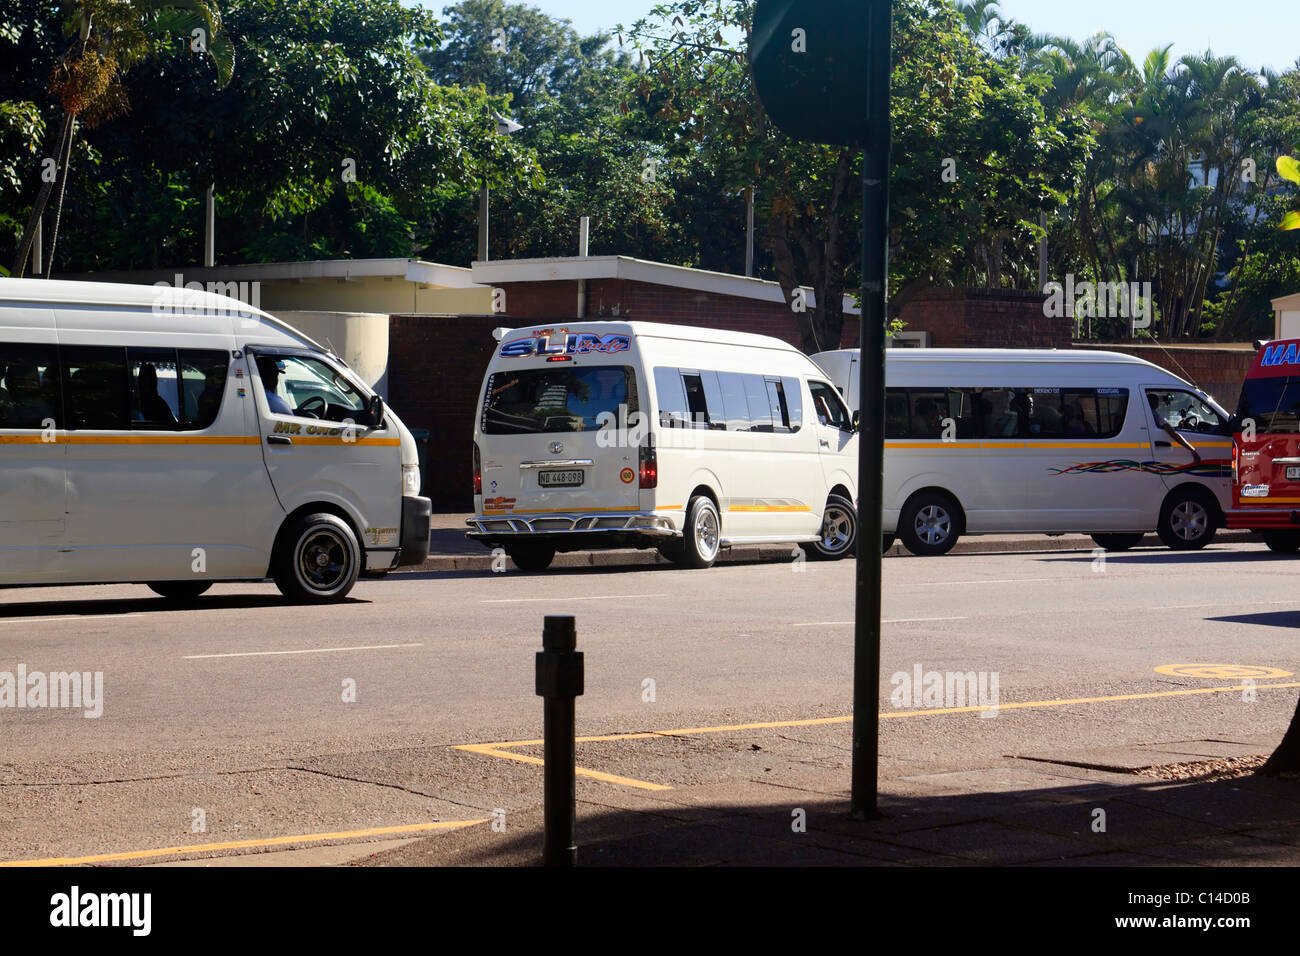 Minibus taxis offloading early morning commuters durban kwazulu natal south africa